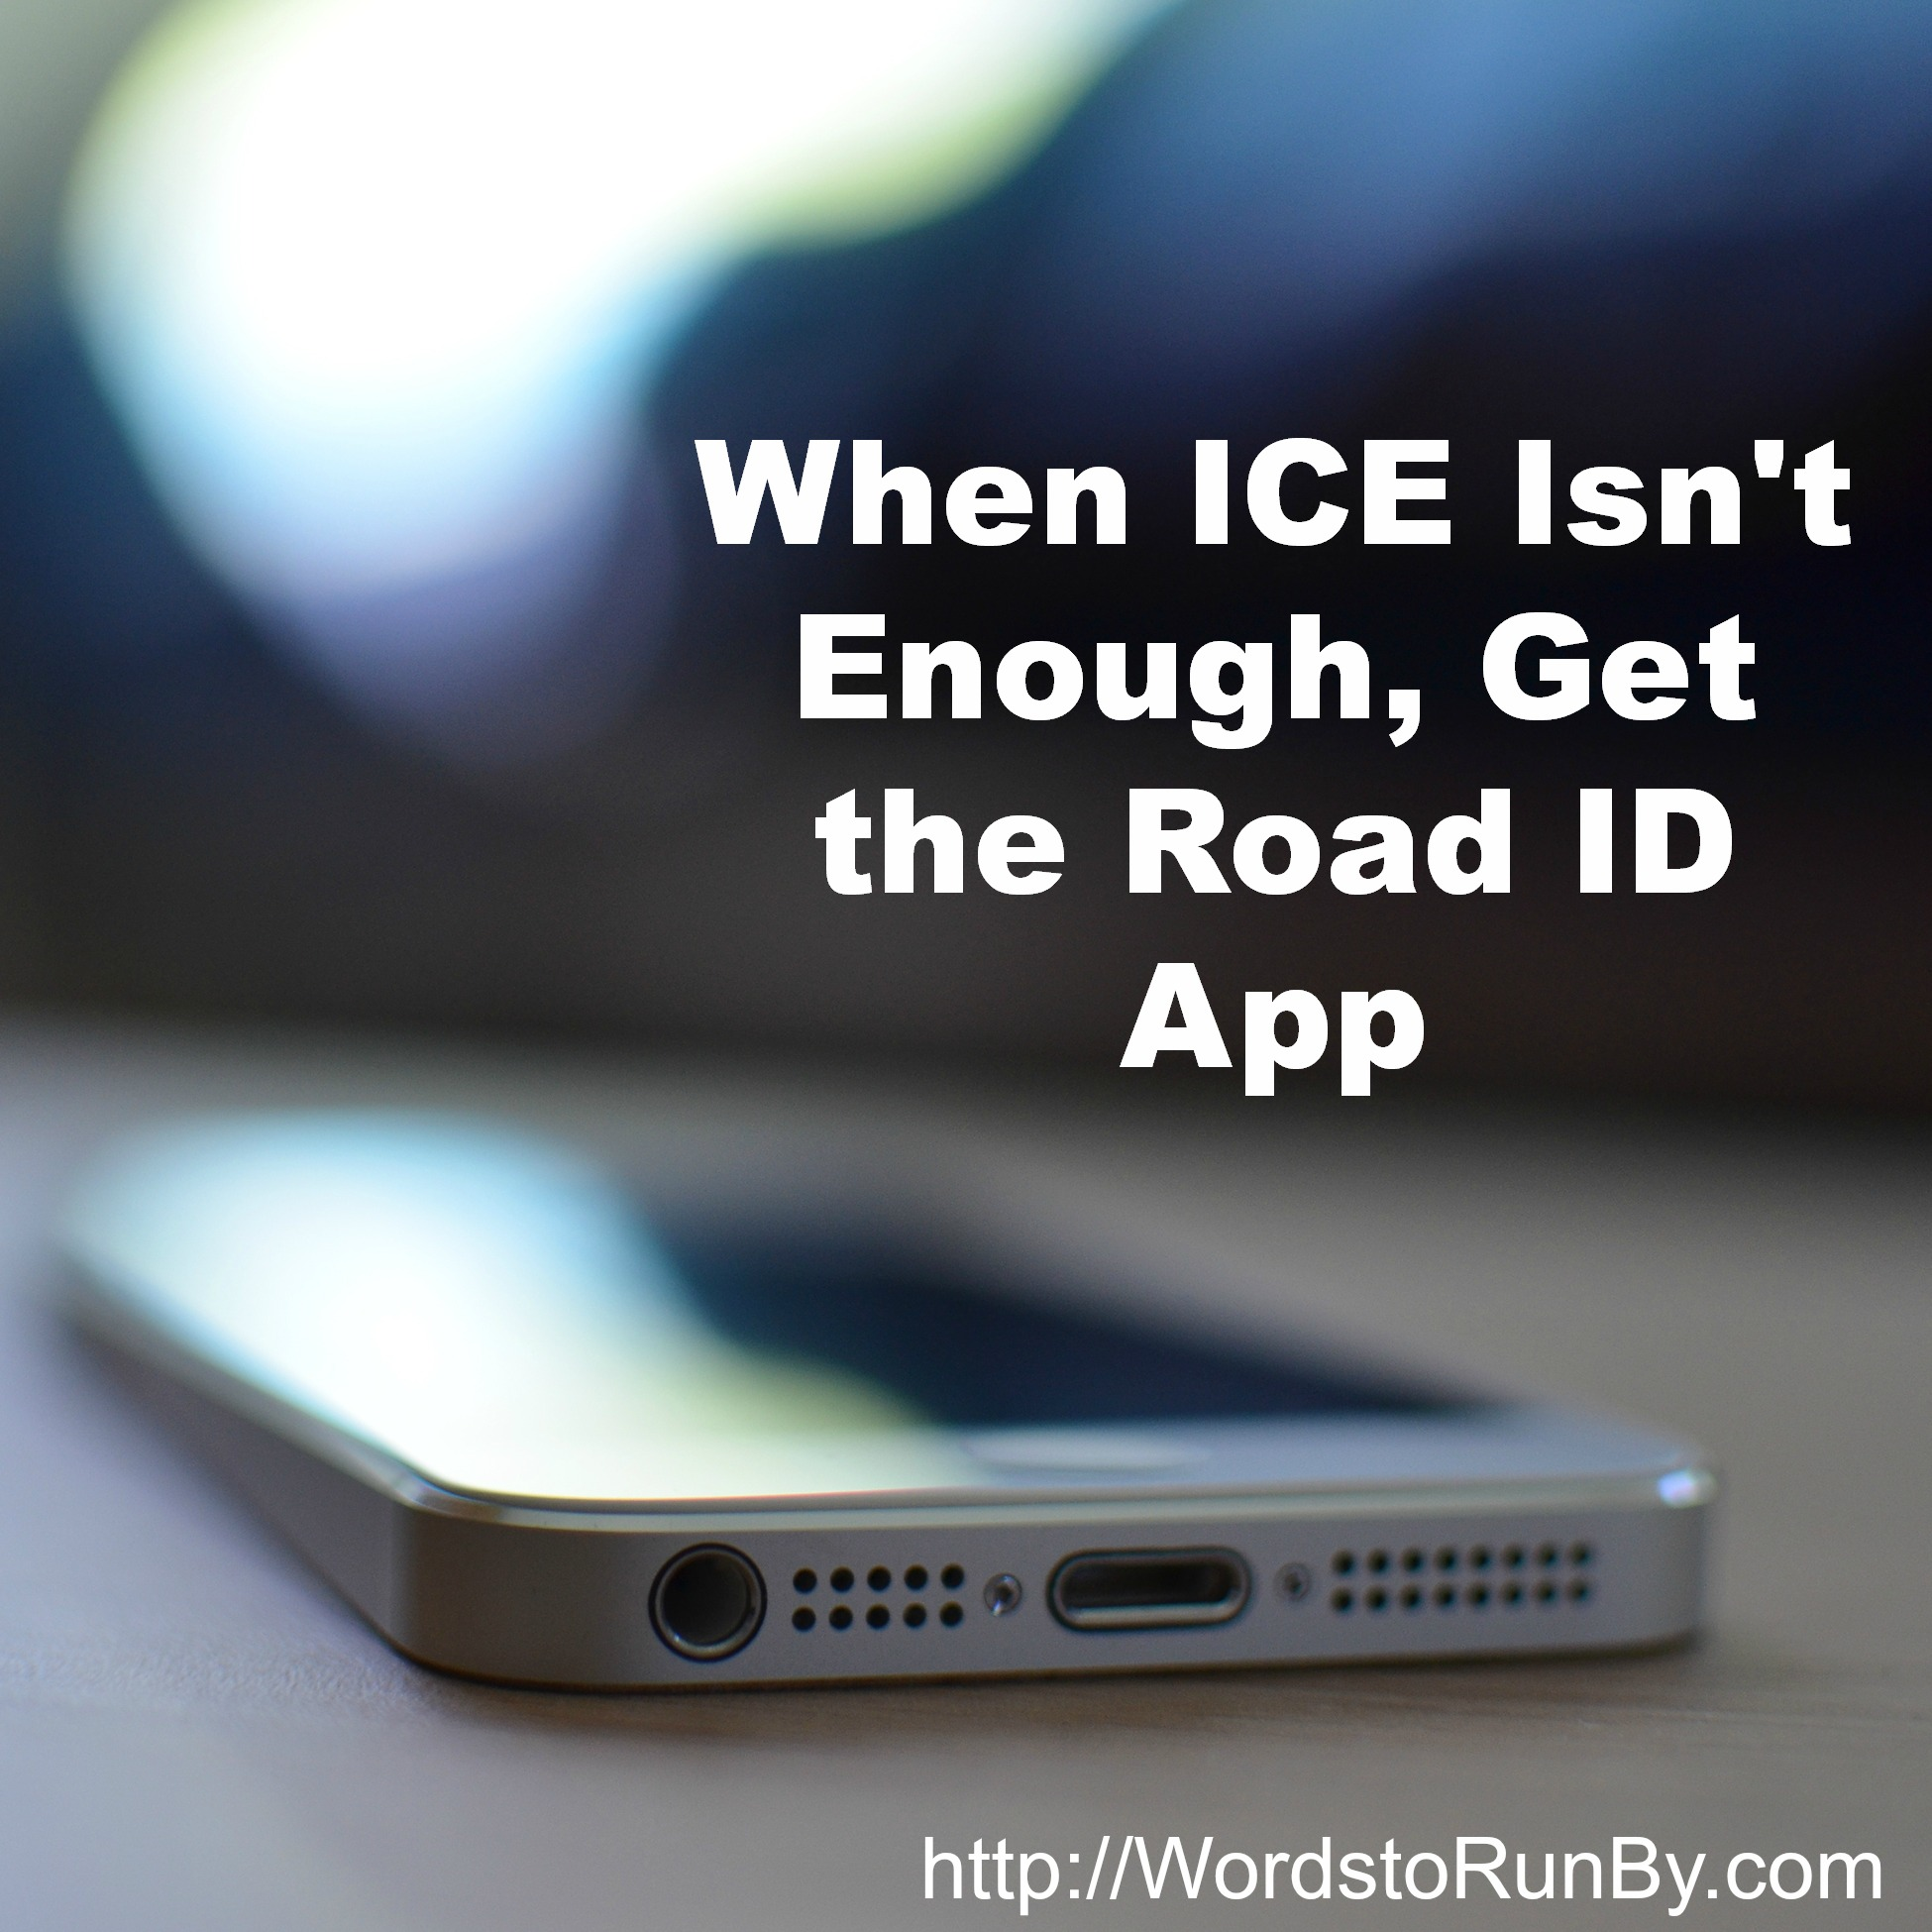 When ICE Isn't Enough, Get the Road ID App - Words To Run By